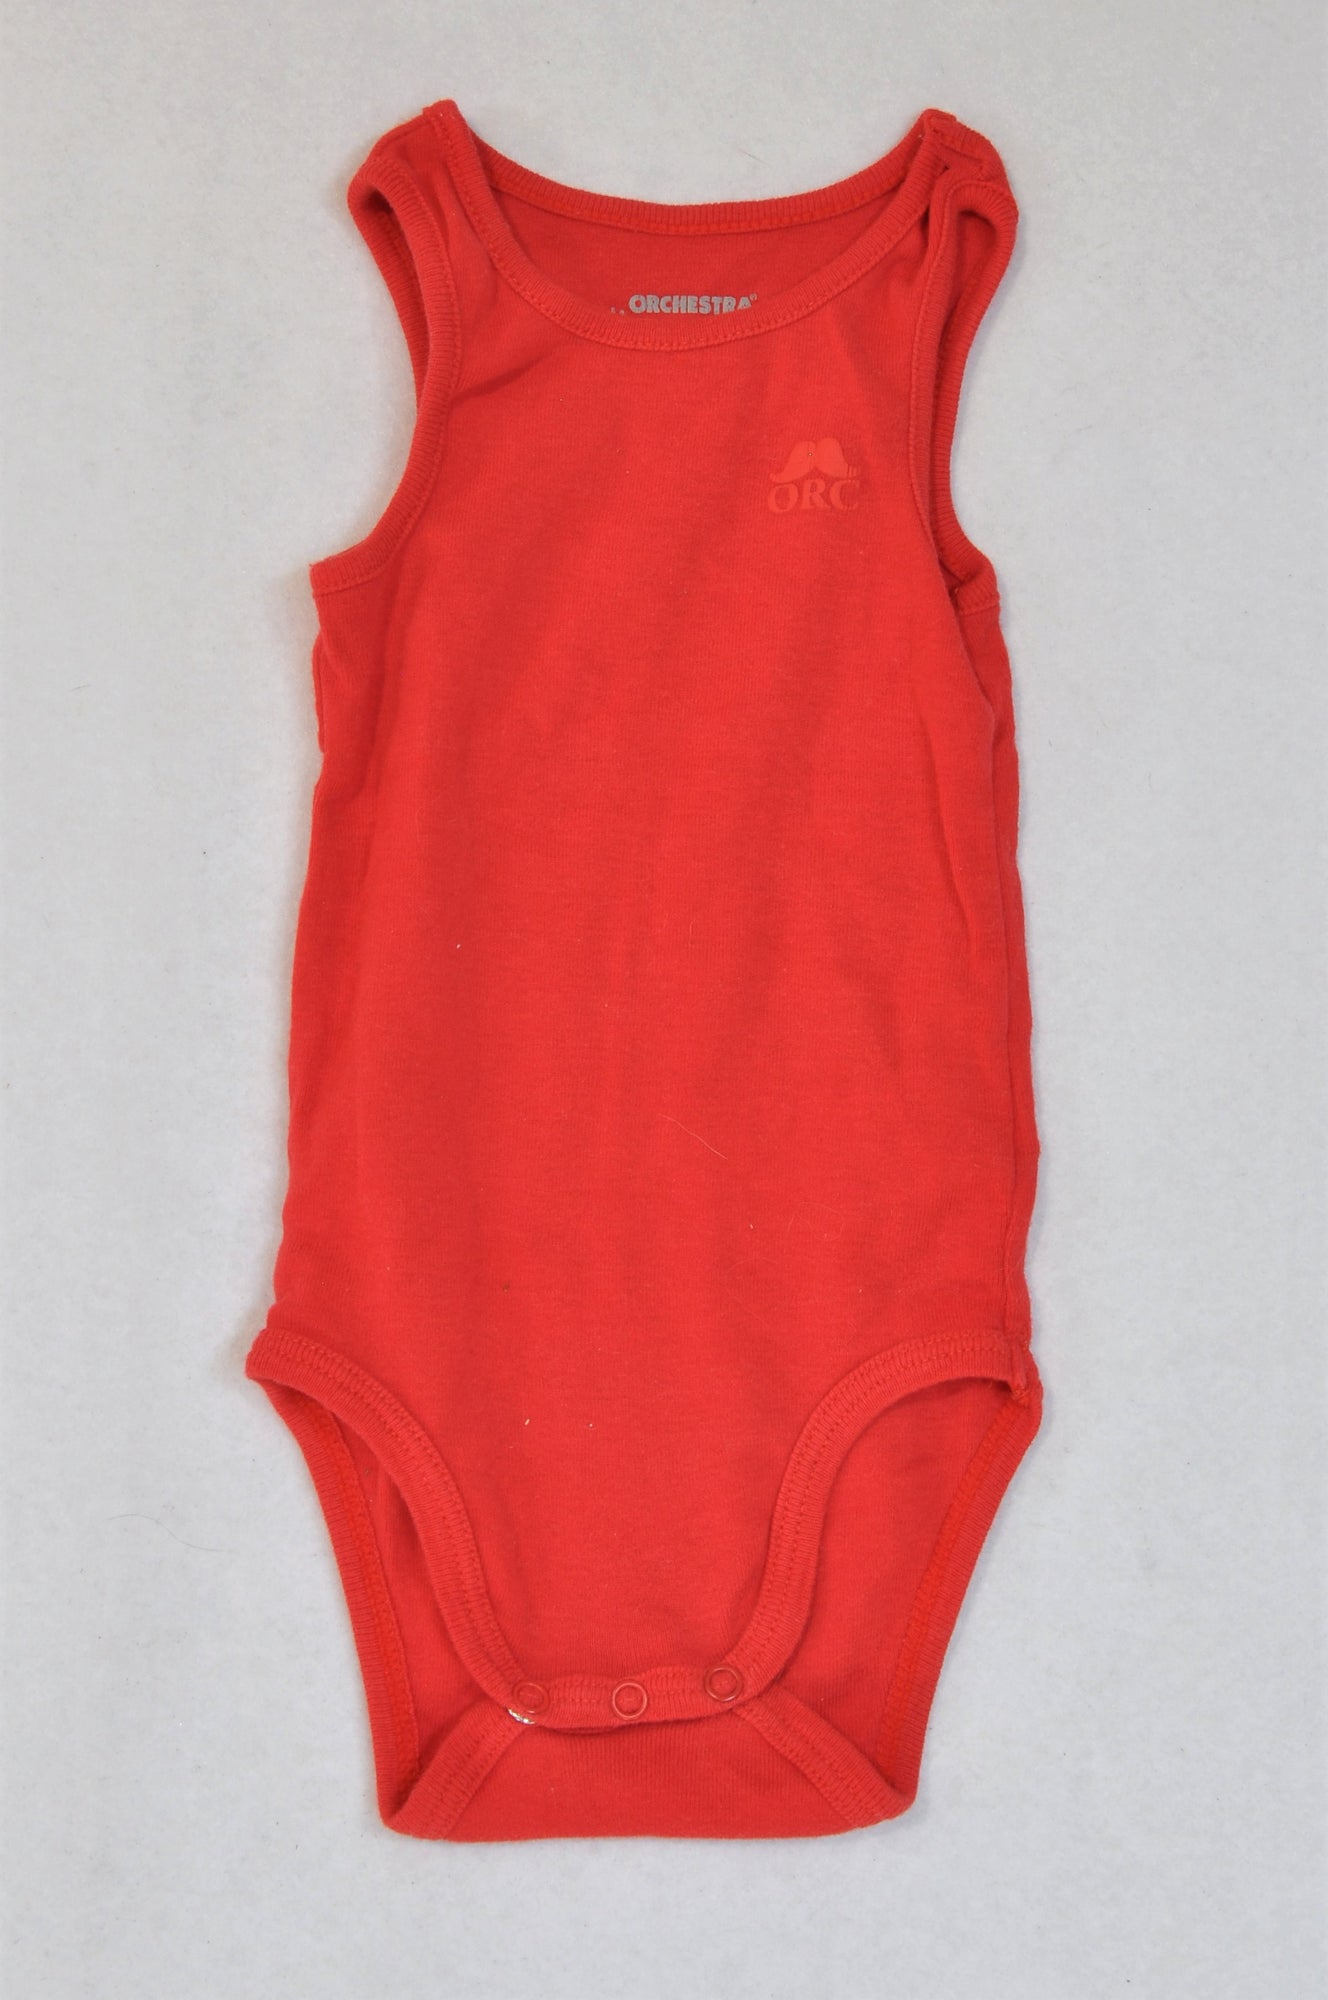 Orchestra Basic Red Logo Baby Grow Unisex 3-6 months